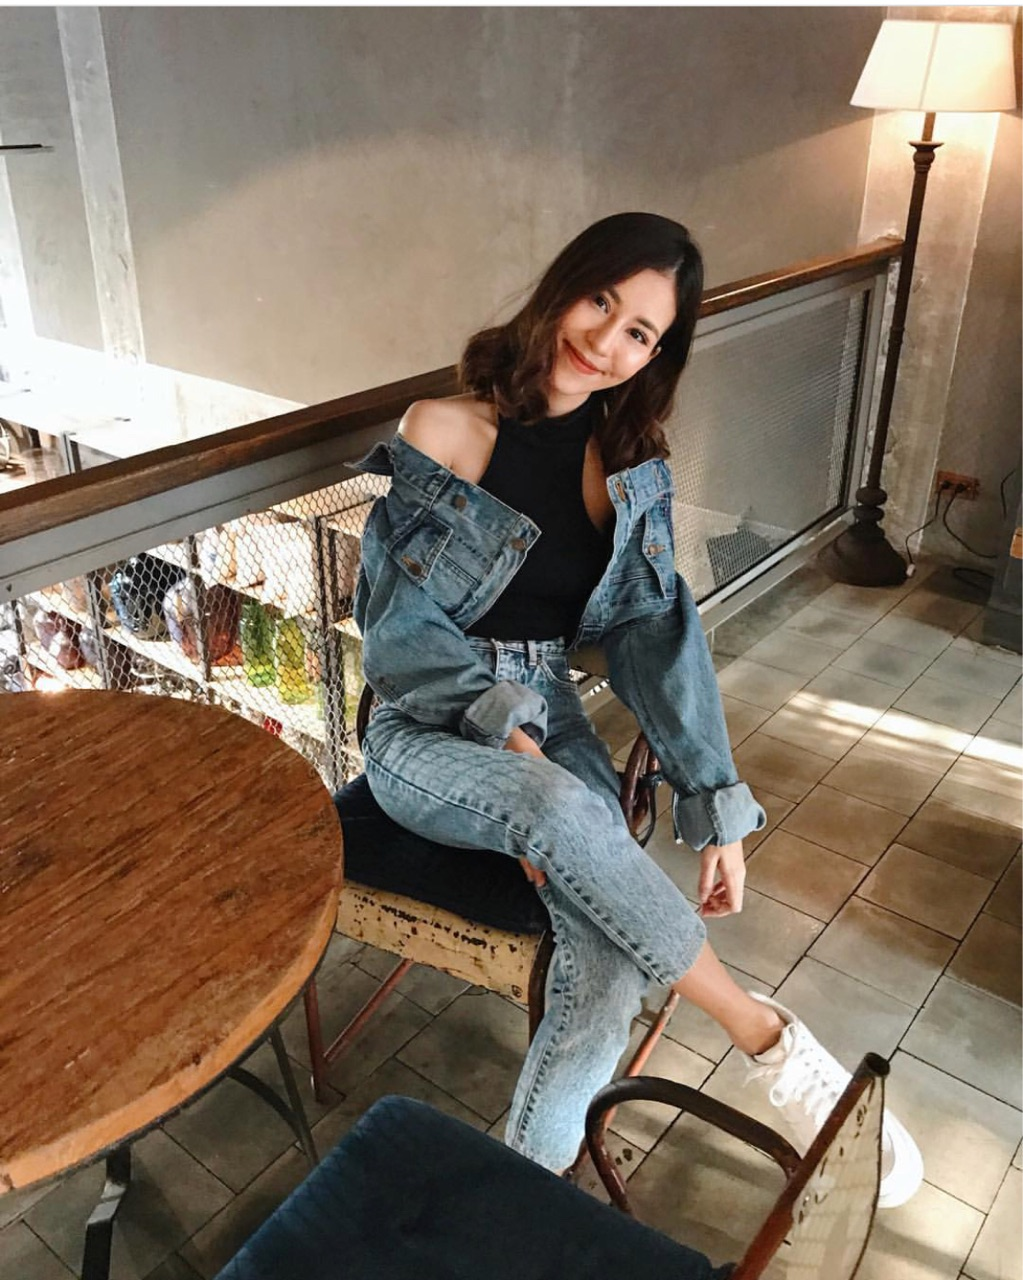 [  Jacket cropped jeans - 990 THB ]